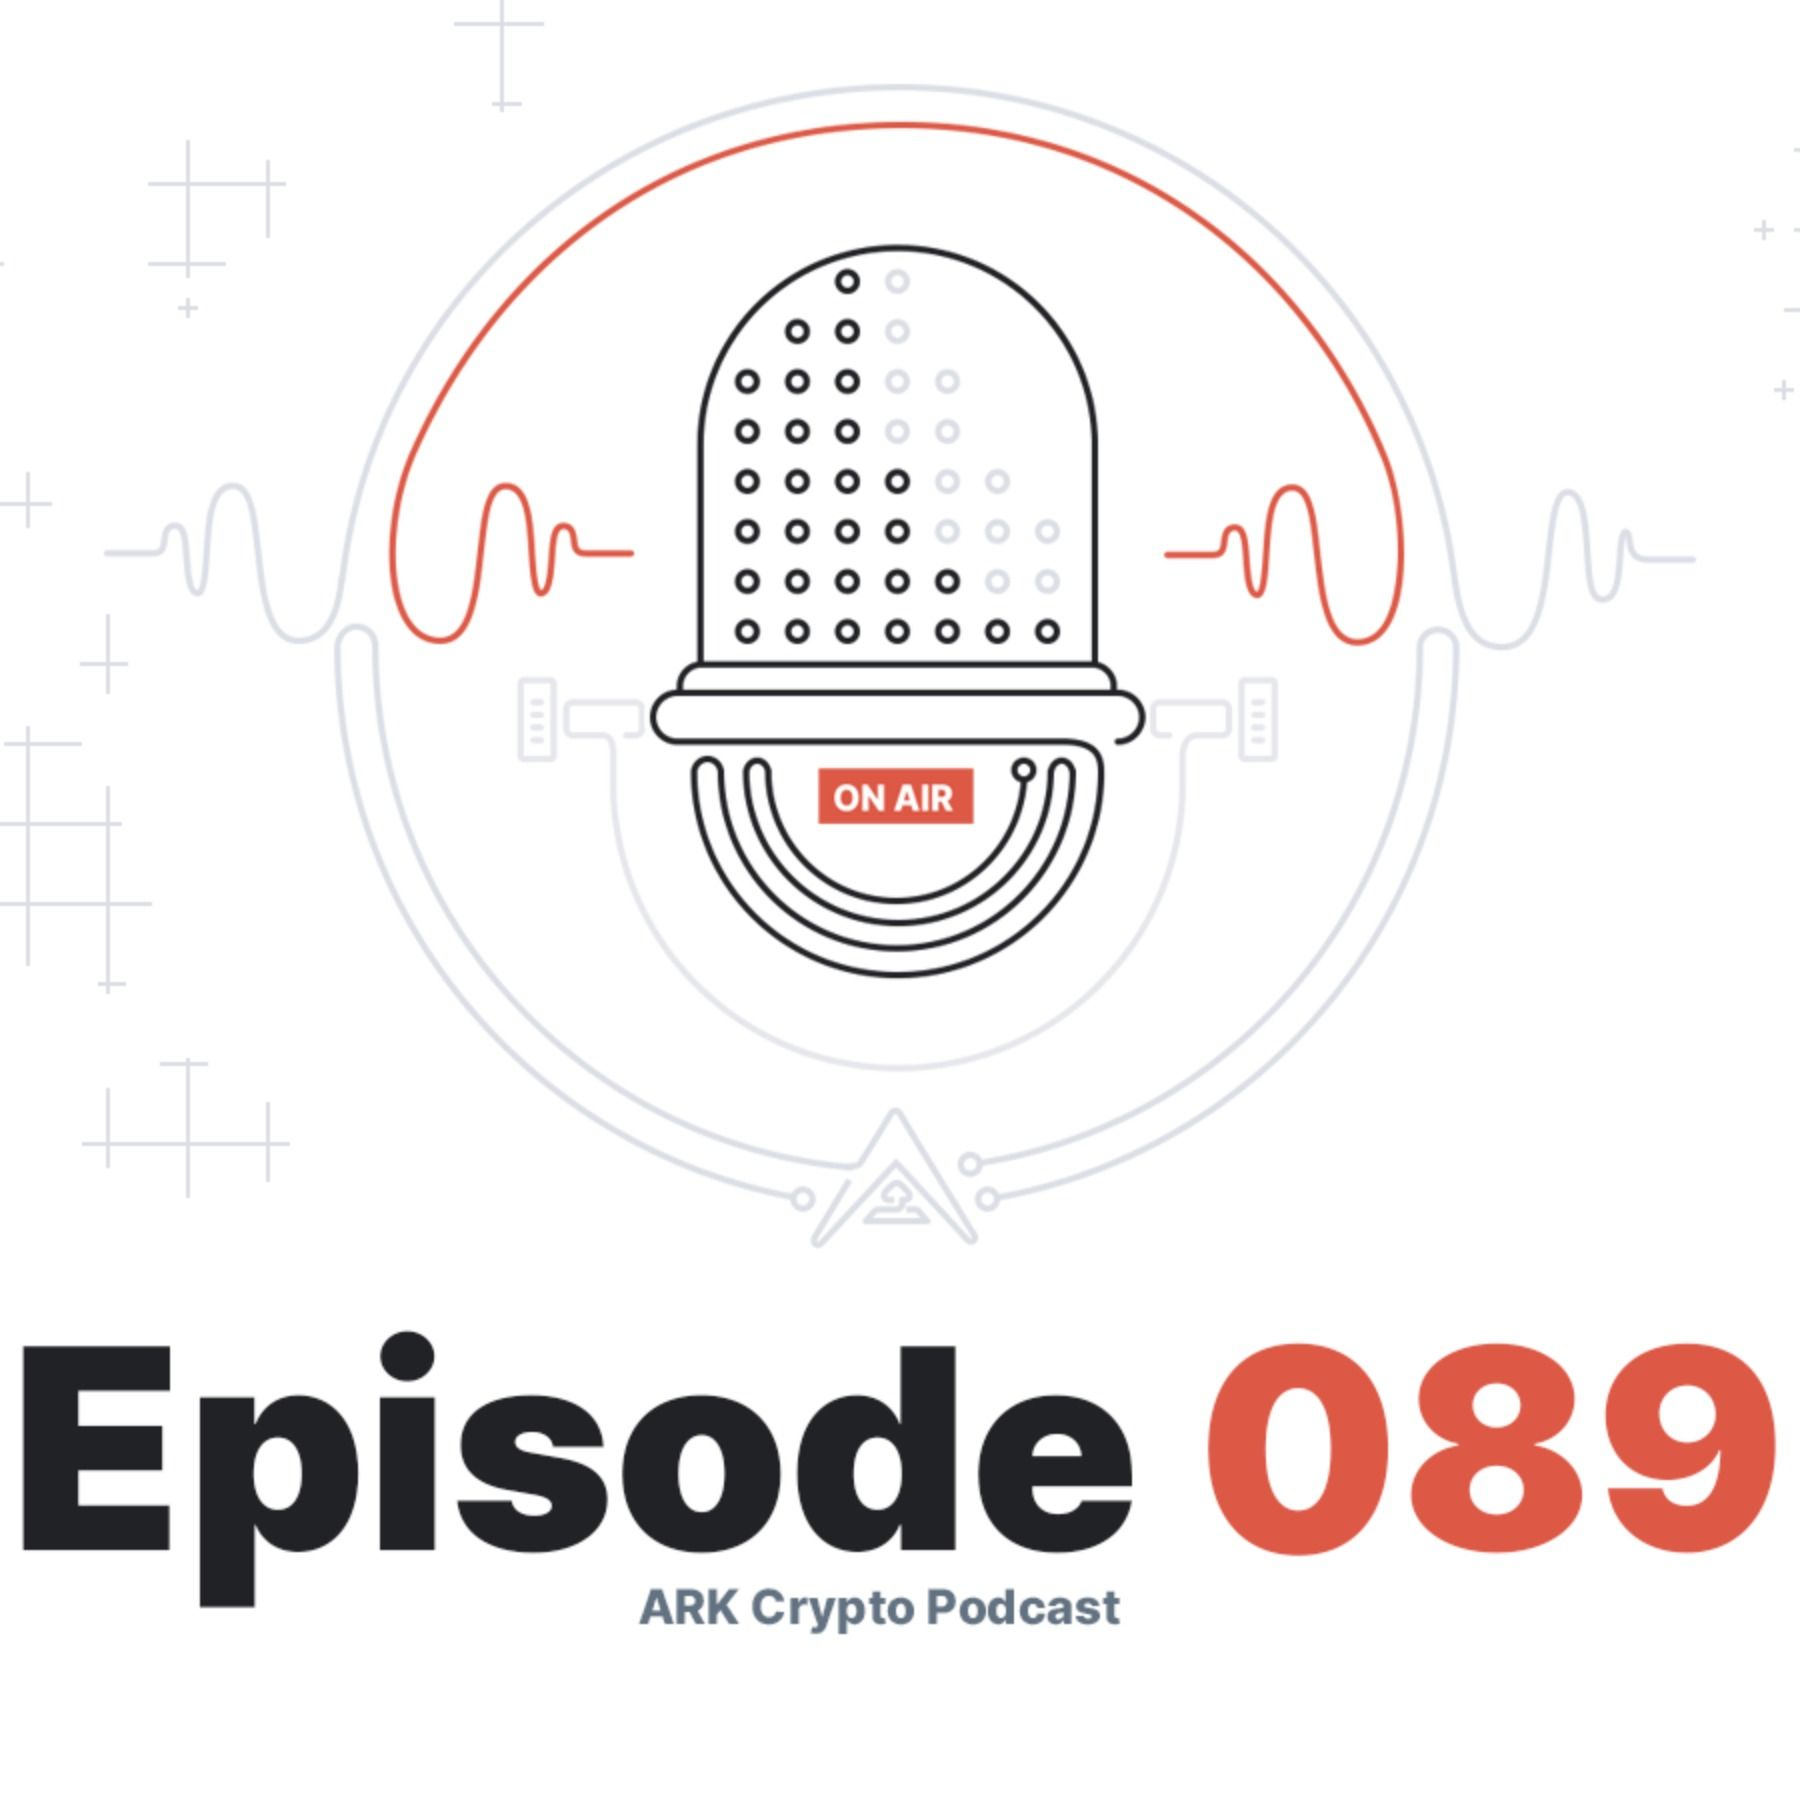 Question and Answers on ARK Core, Deployer, Wallets, and More - ARK Crypto Podcast #089